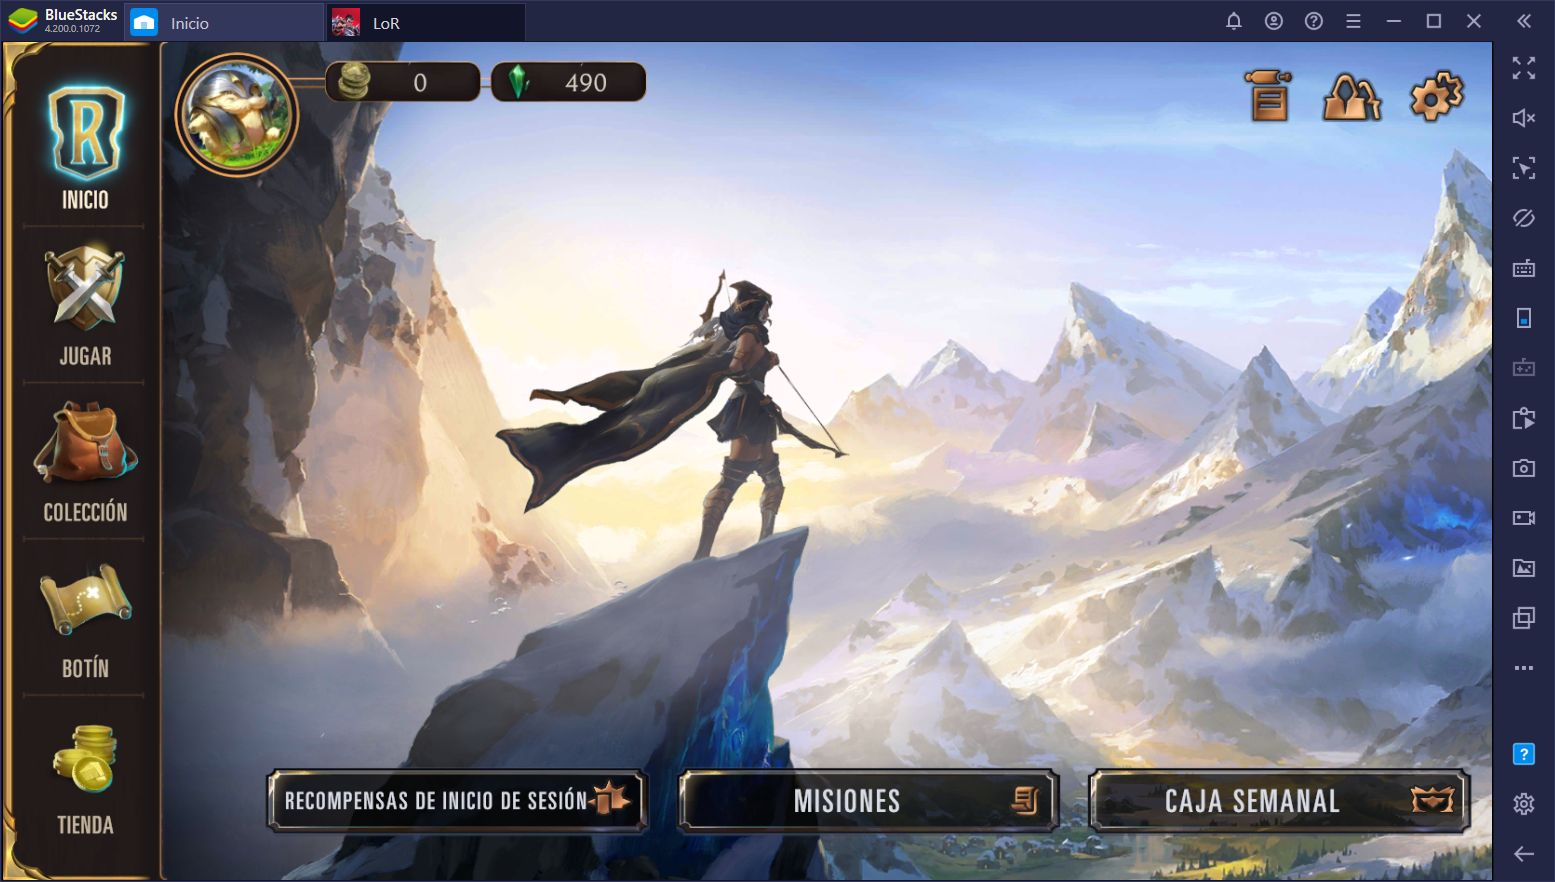 Legends of Runeterra en PC - Introducción a las Distintas Regiones